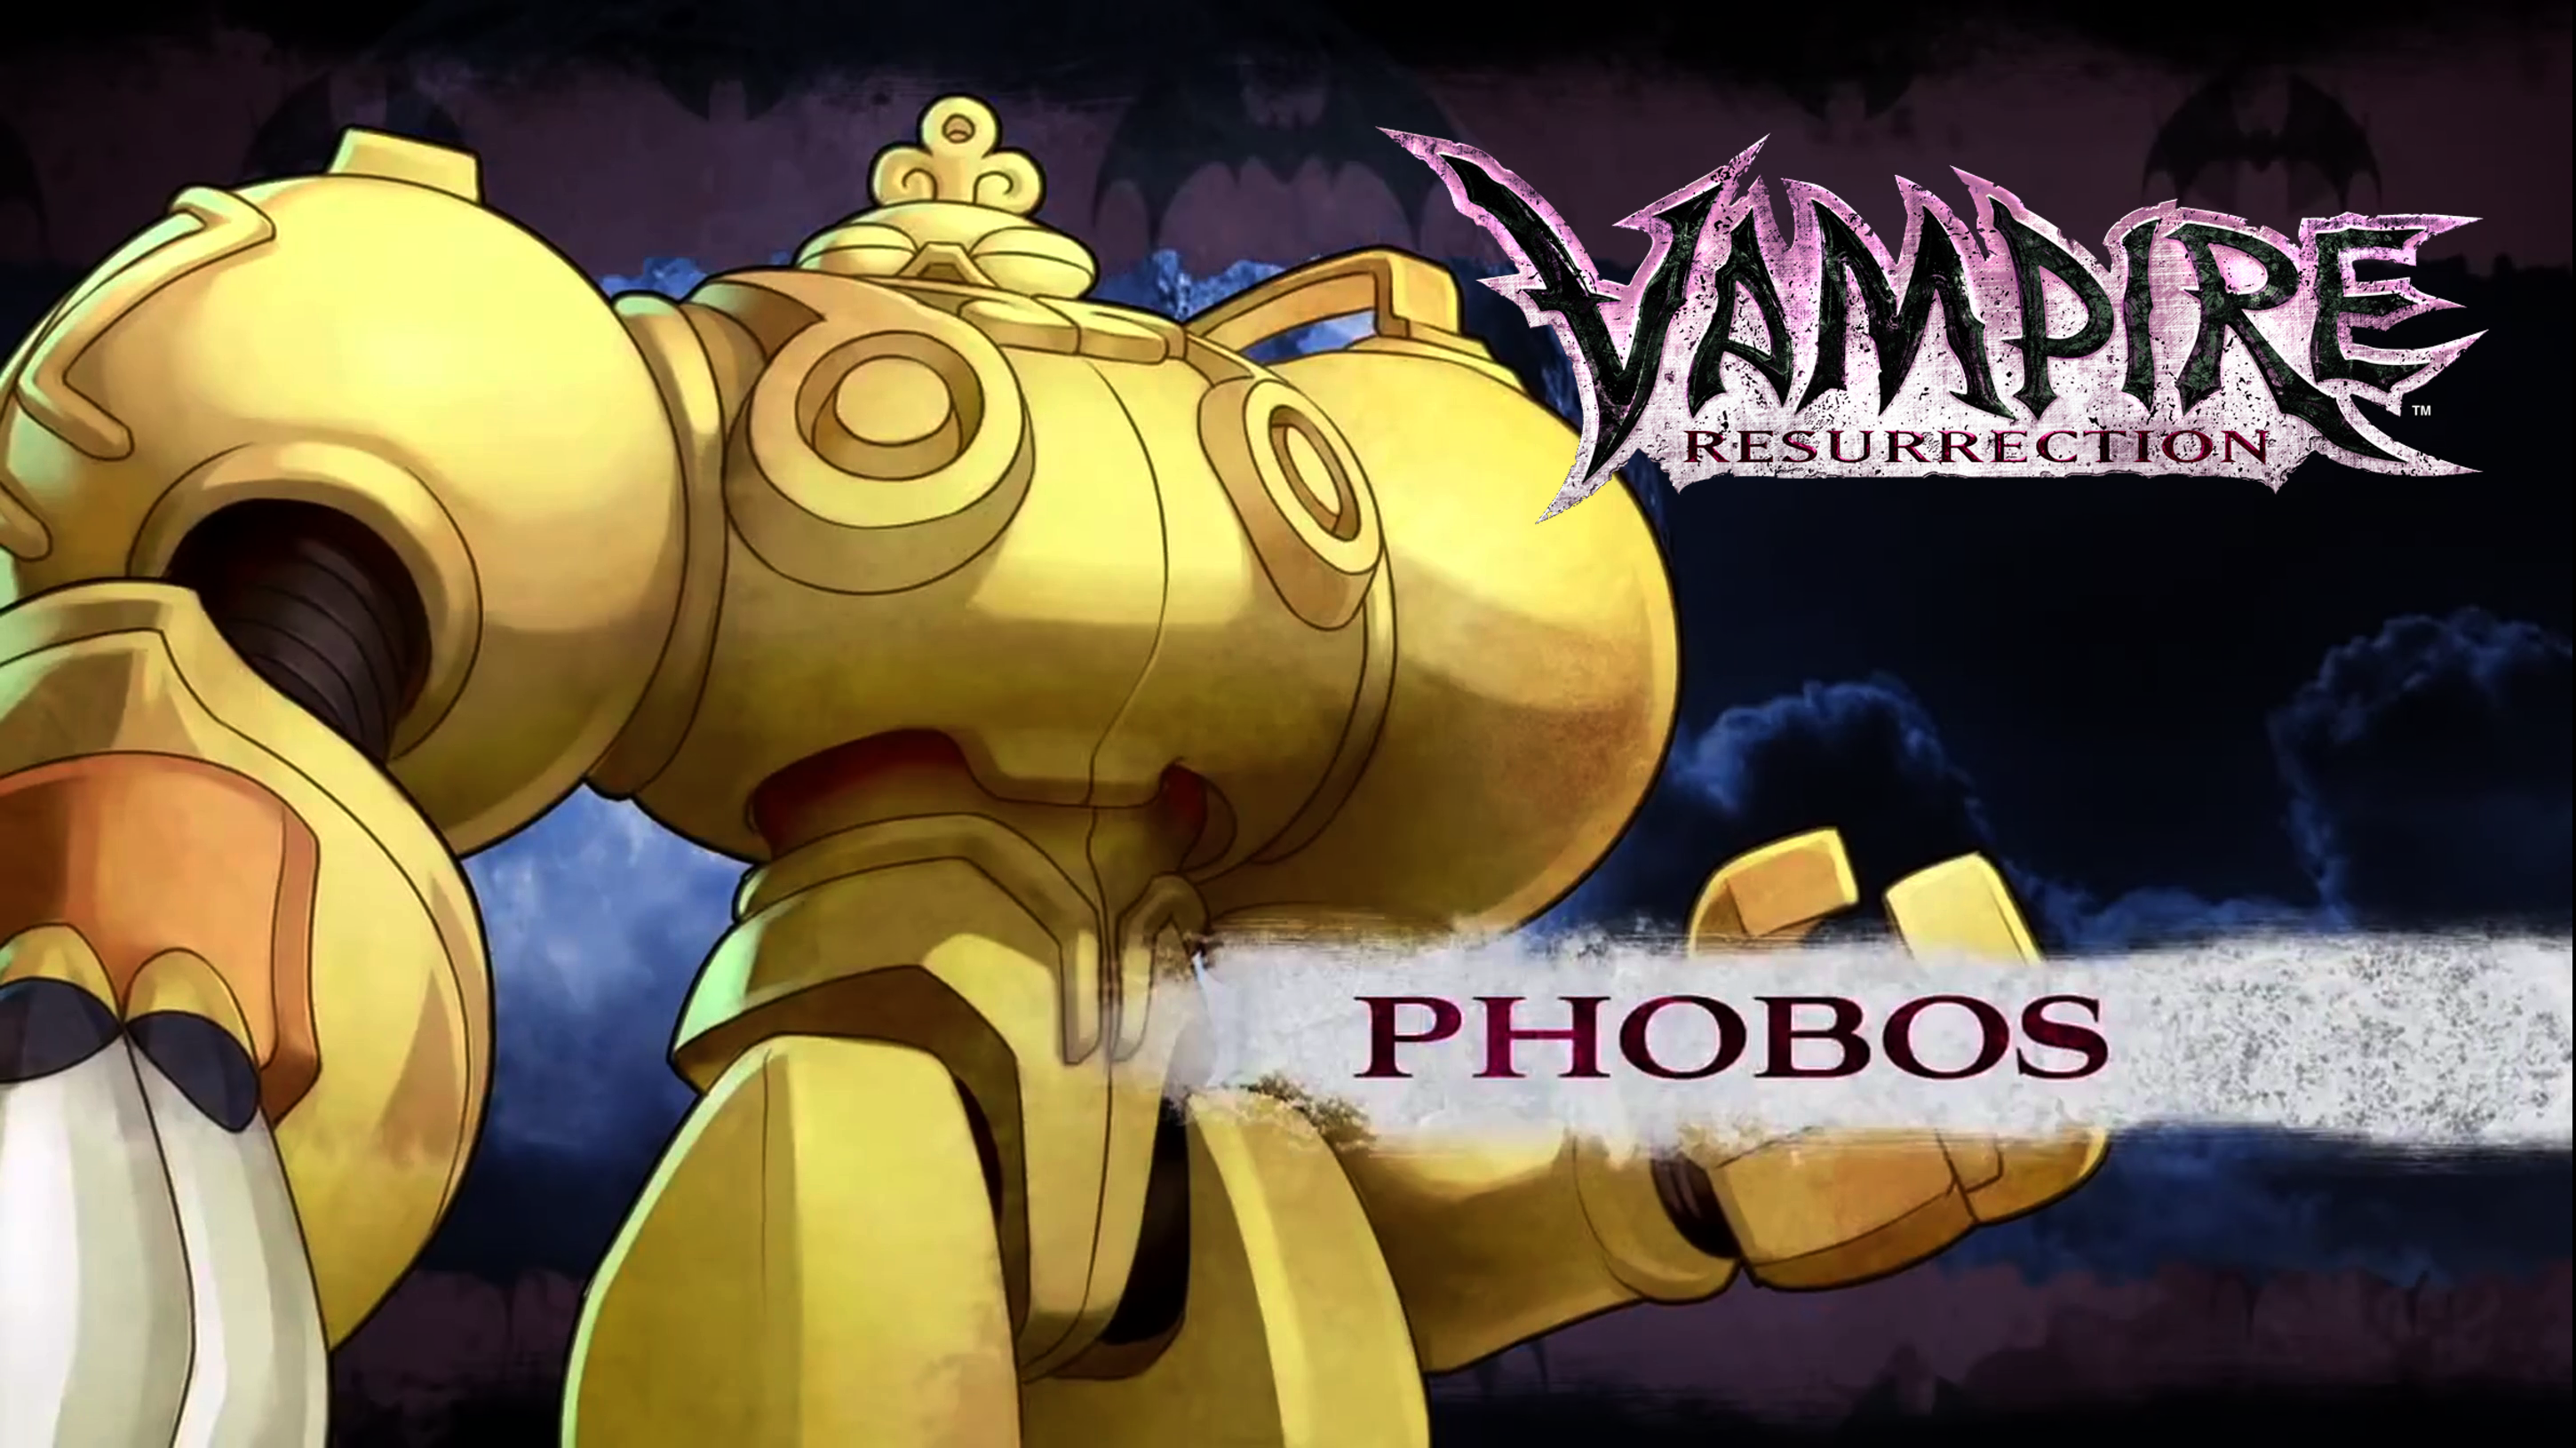 vampire_resurrection__phobos_by_scoobydude51-d7sgsrs.png